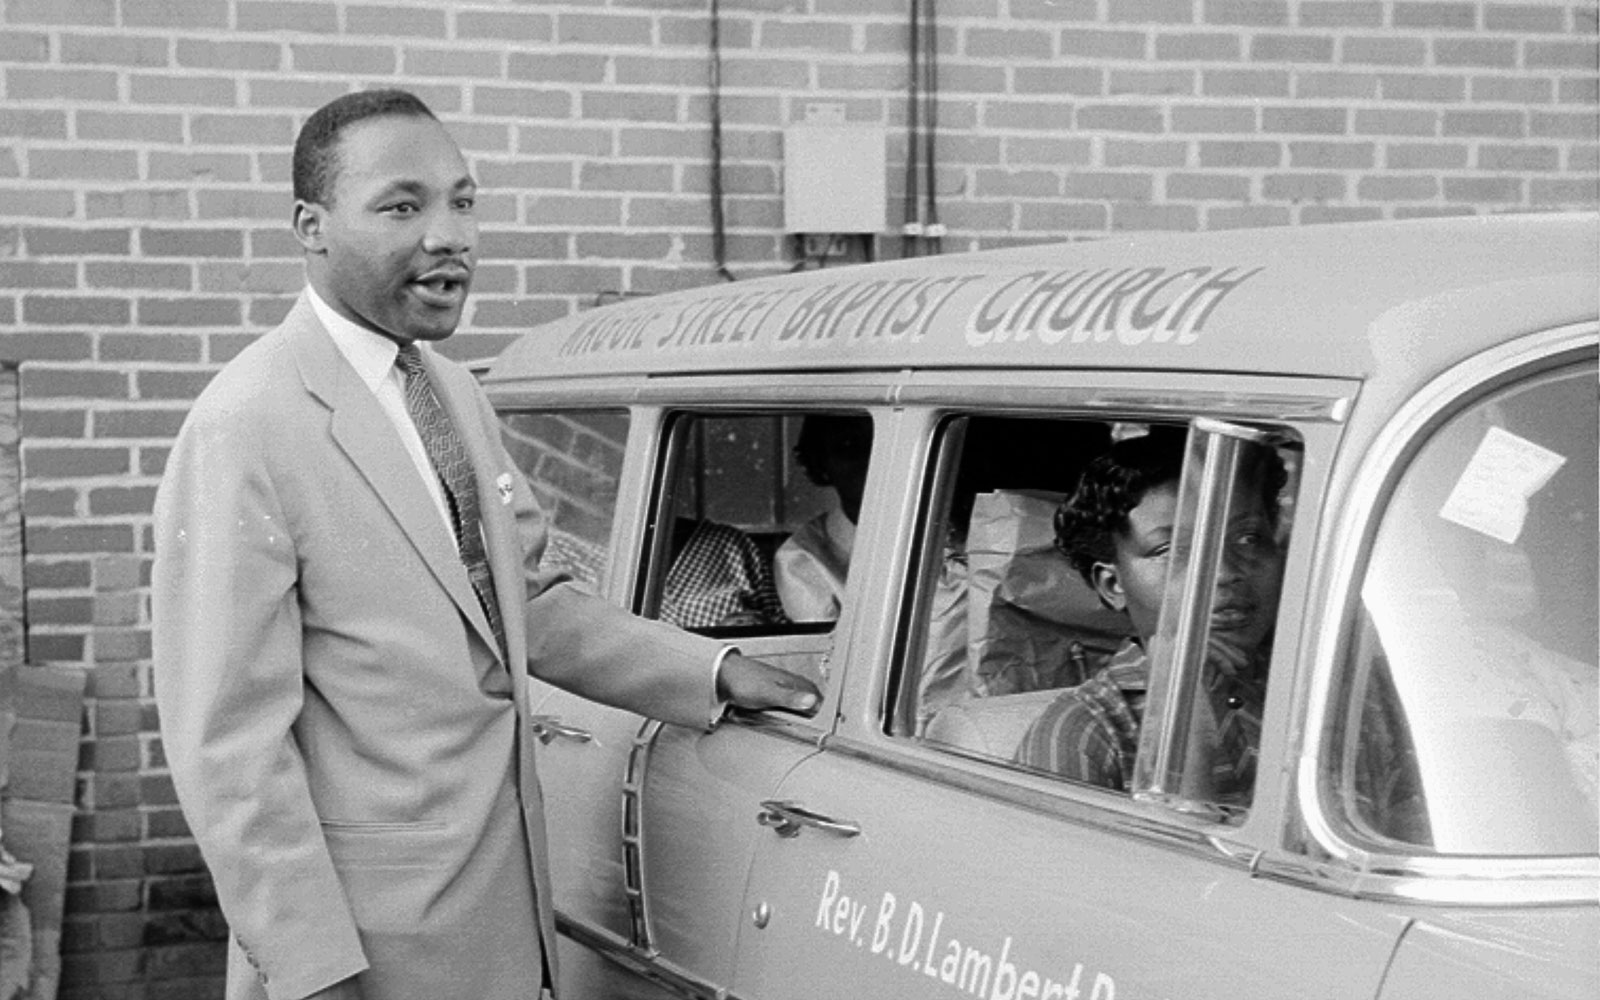 Follow Martin Luther King Jr.'s Footsteps on This Roadtrip